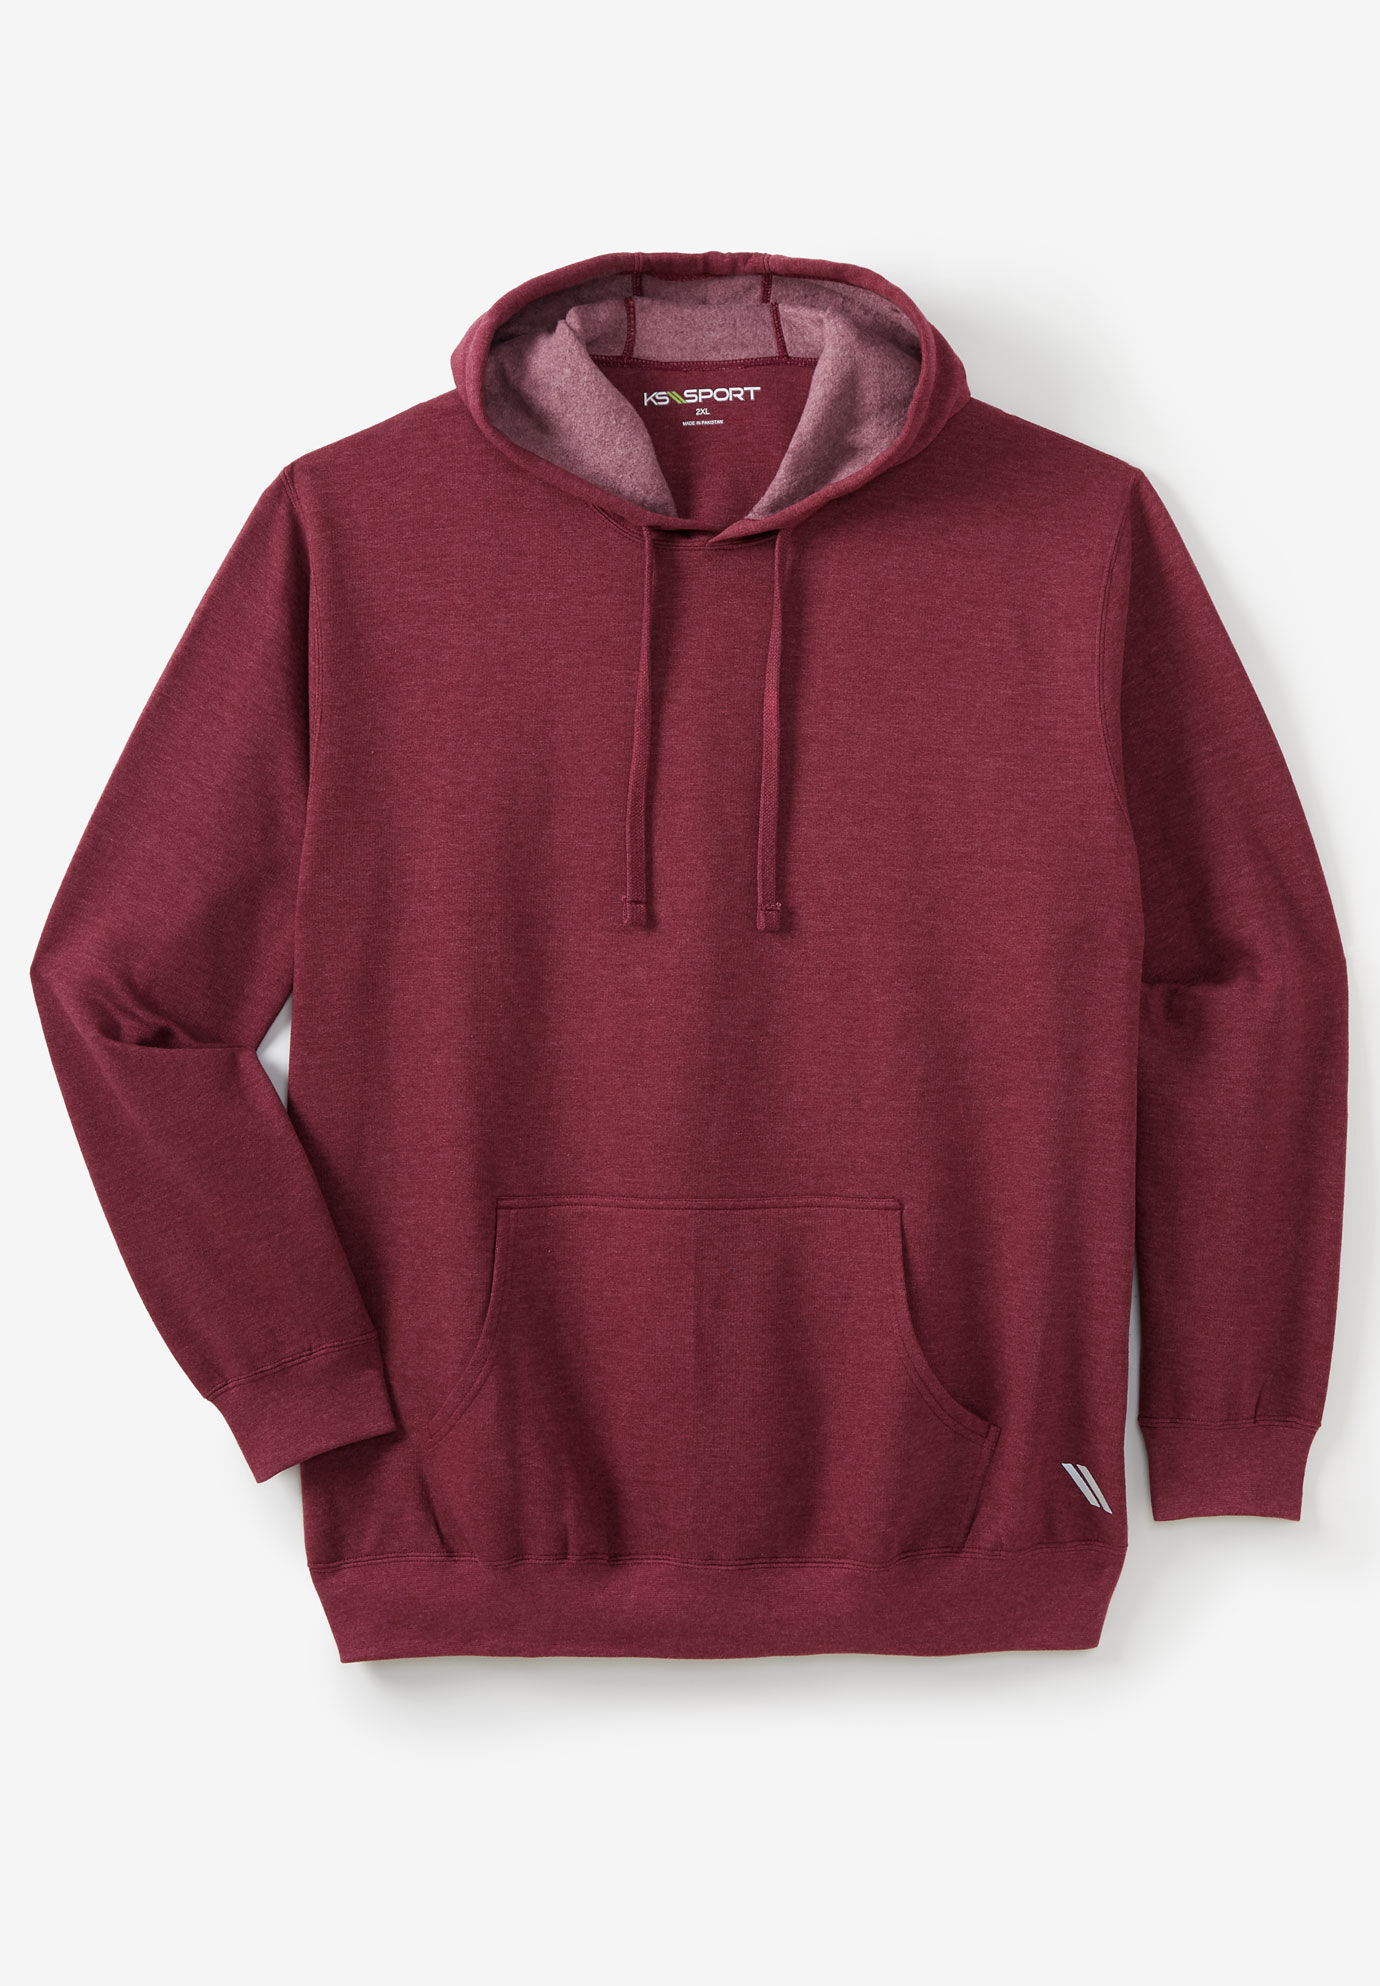 Wholesale Big and Tall Hoodies & Sweatshirts for Men (to 4XL plus) | King Size  for sale